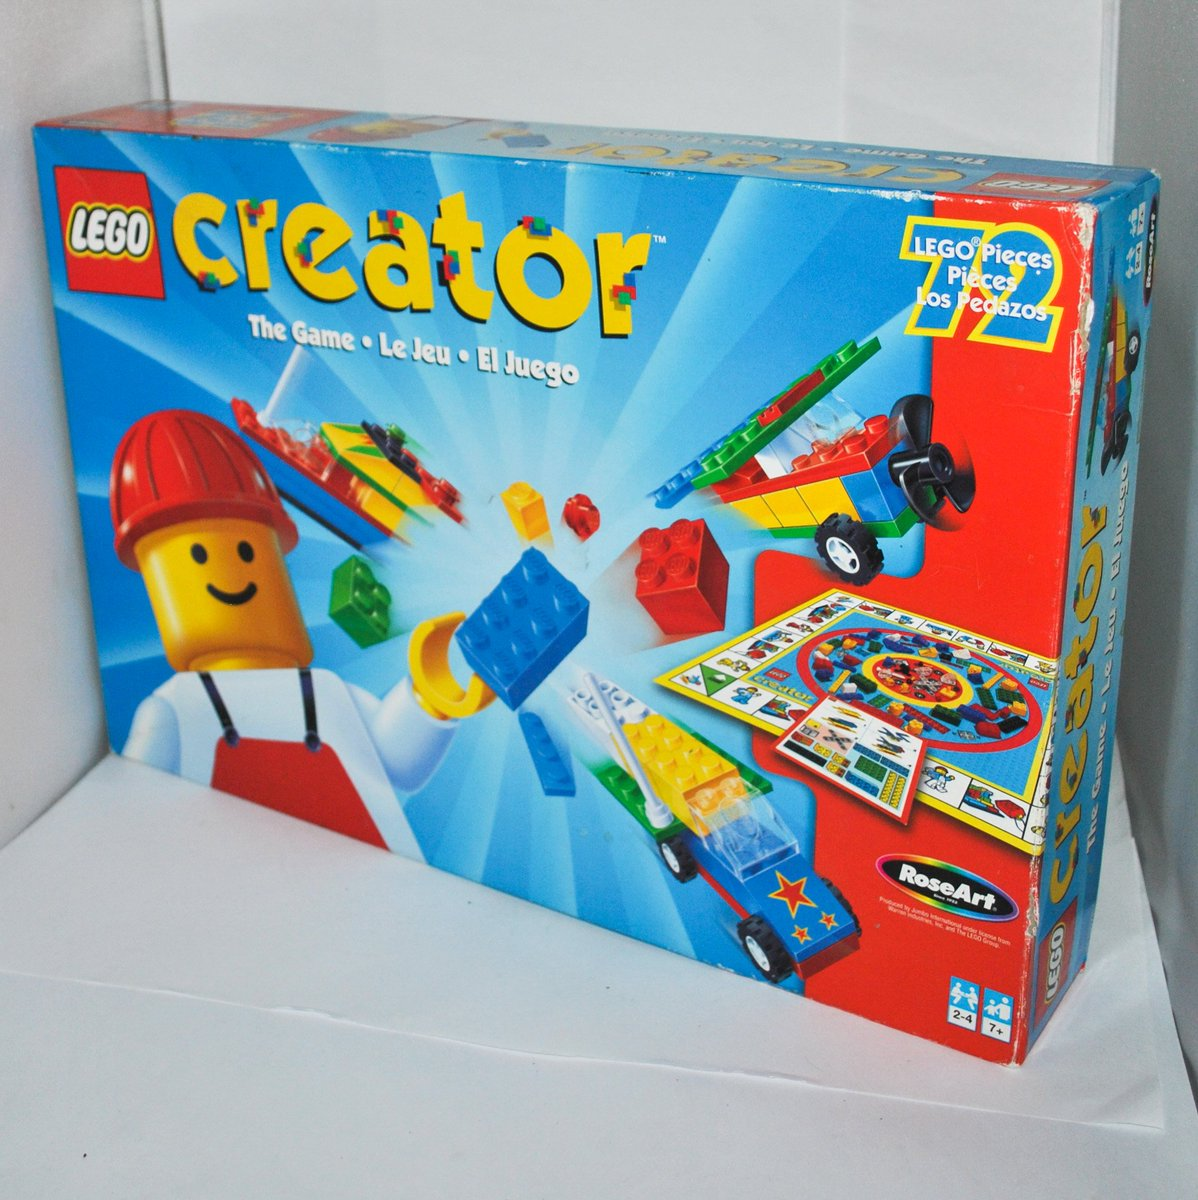 Ct Toys Collectables On Twitter Check Out This Lego Creator